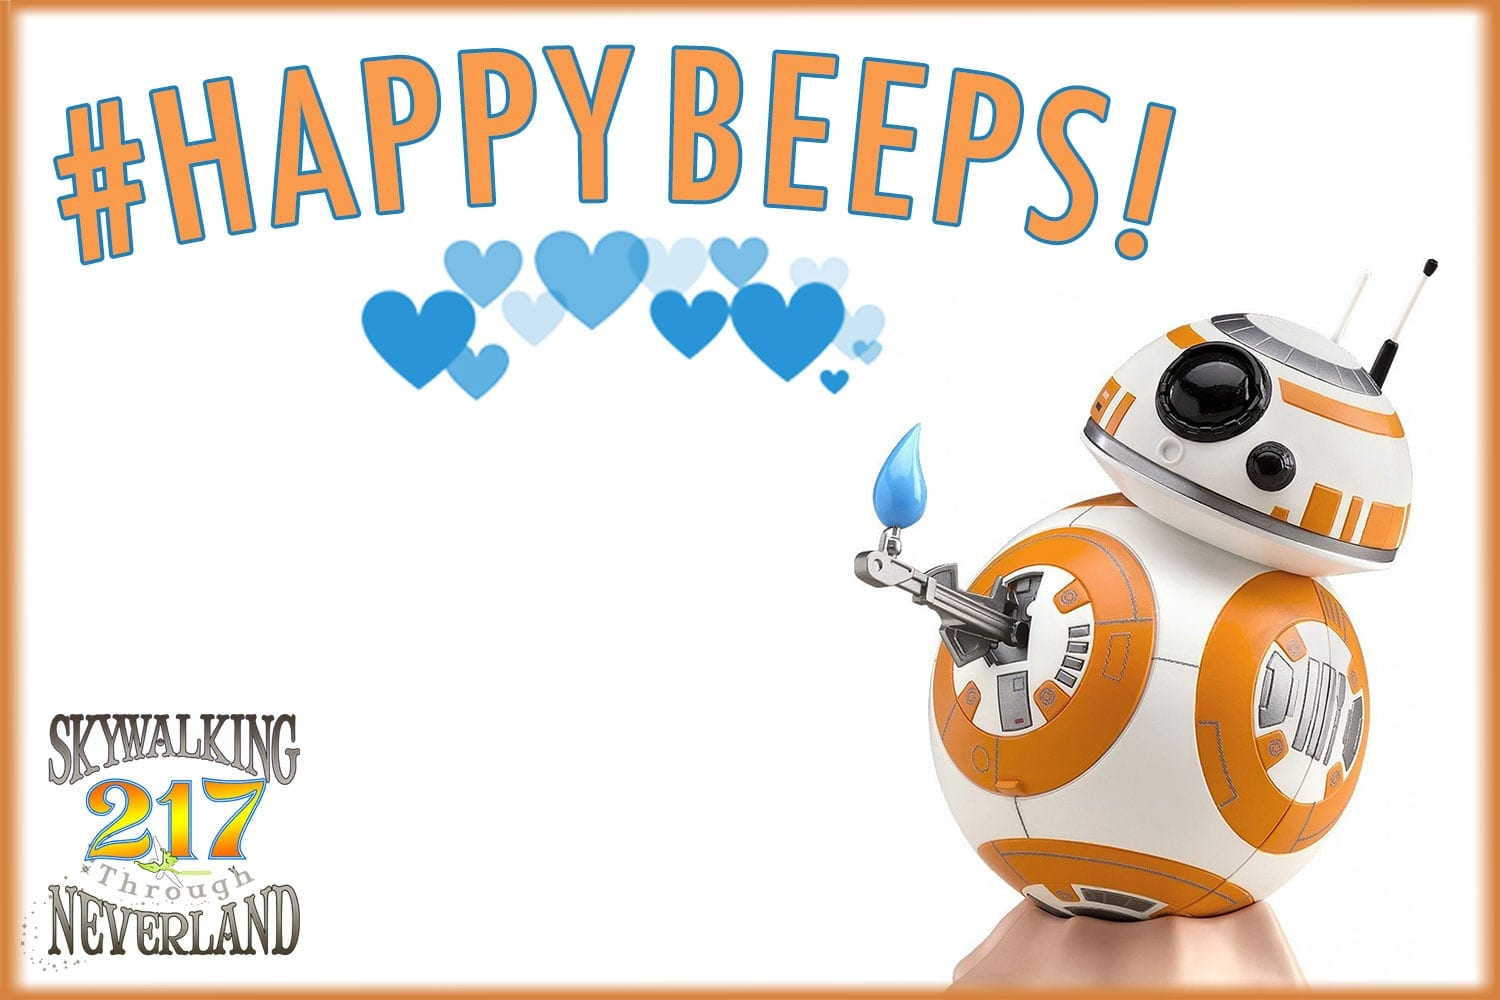 Skywalking Through Neverland #217: #HappyBeeps!